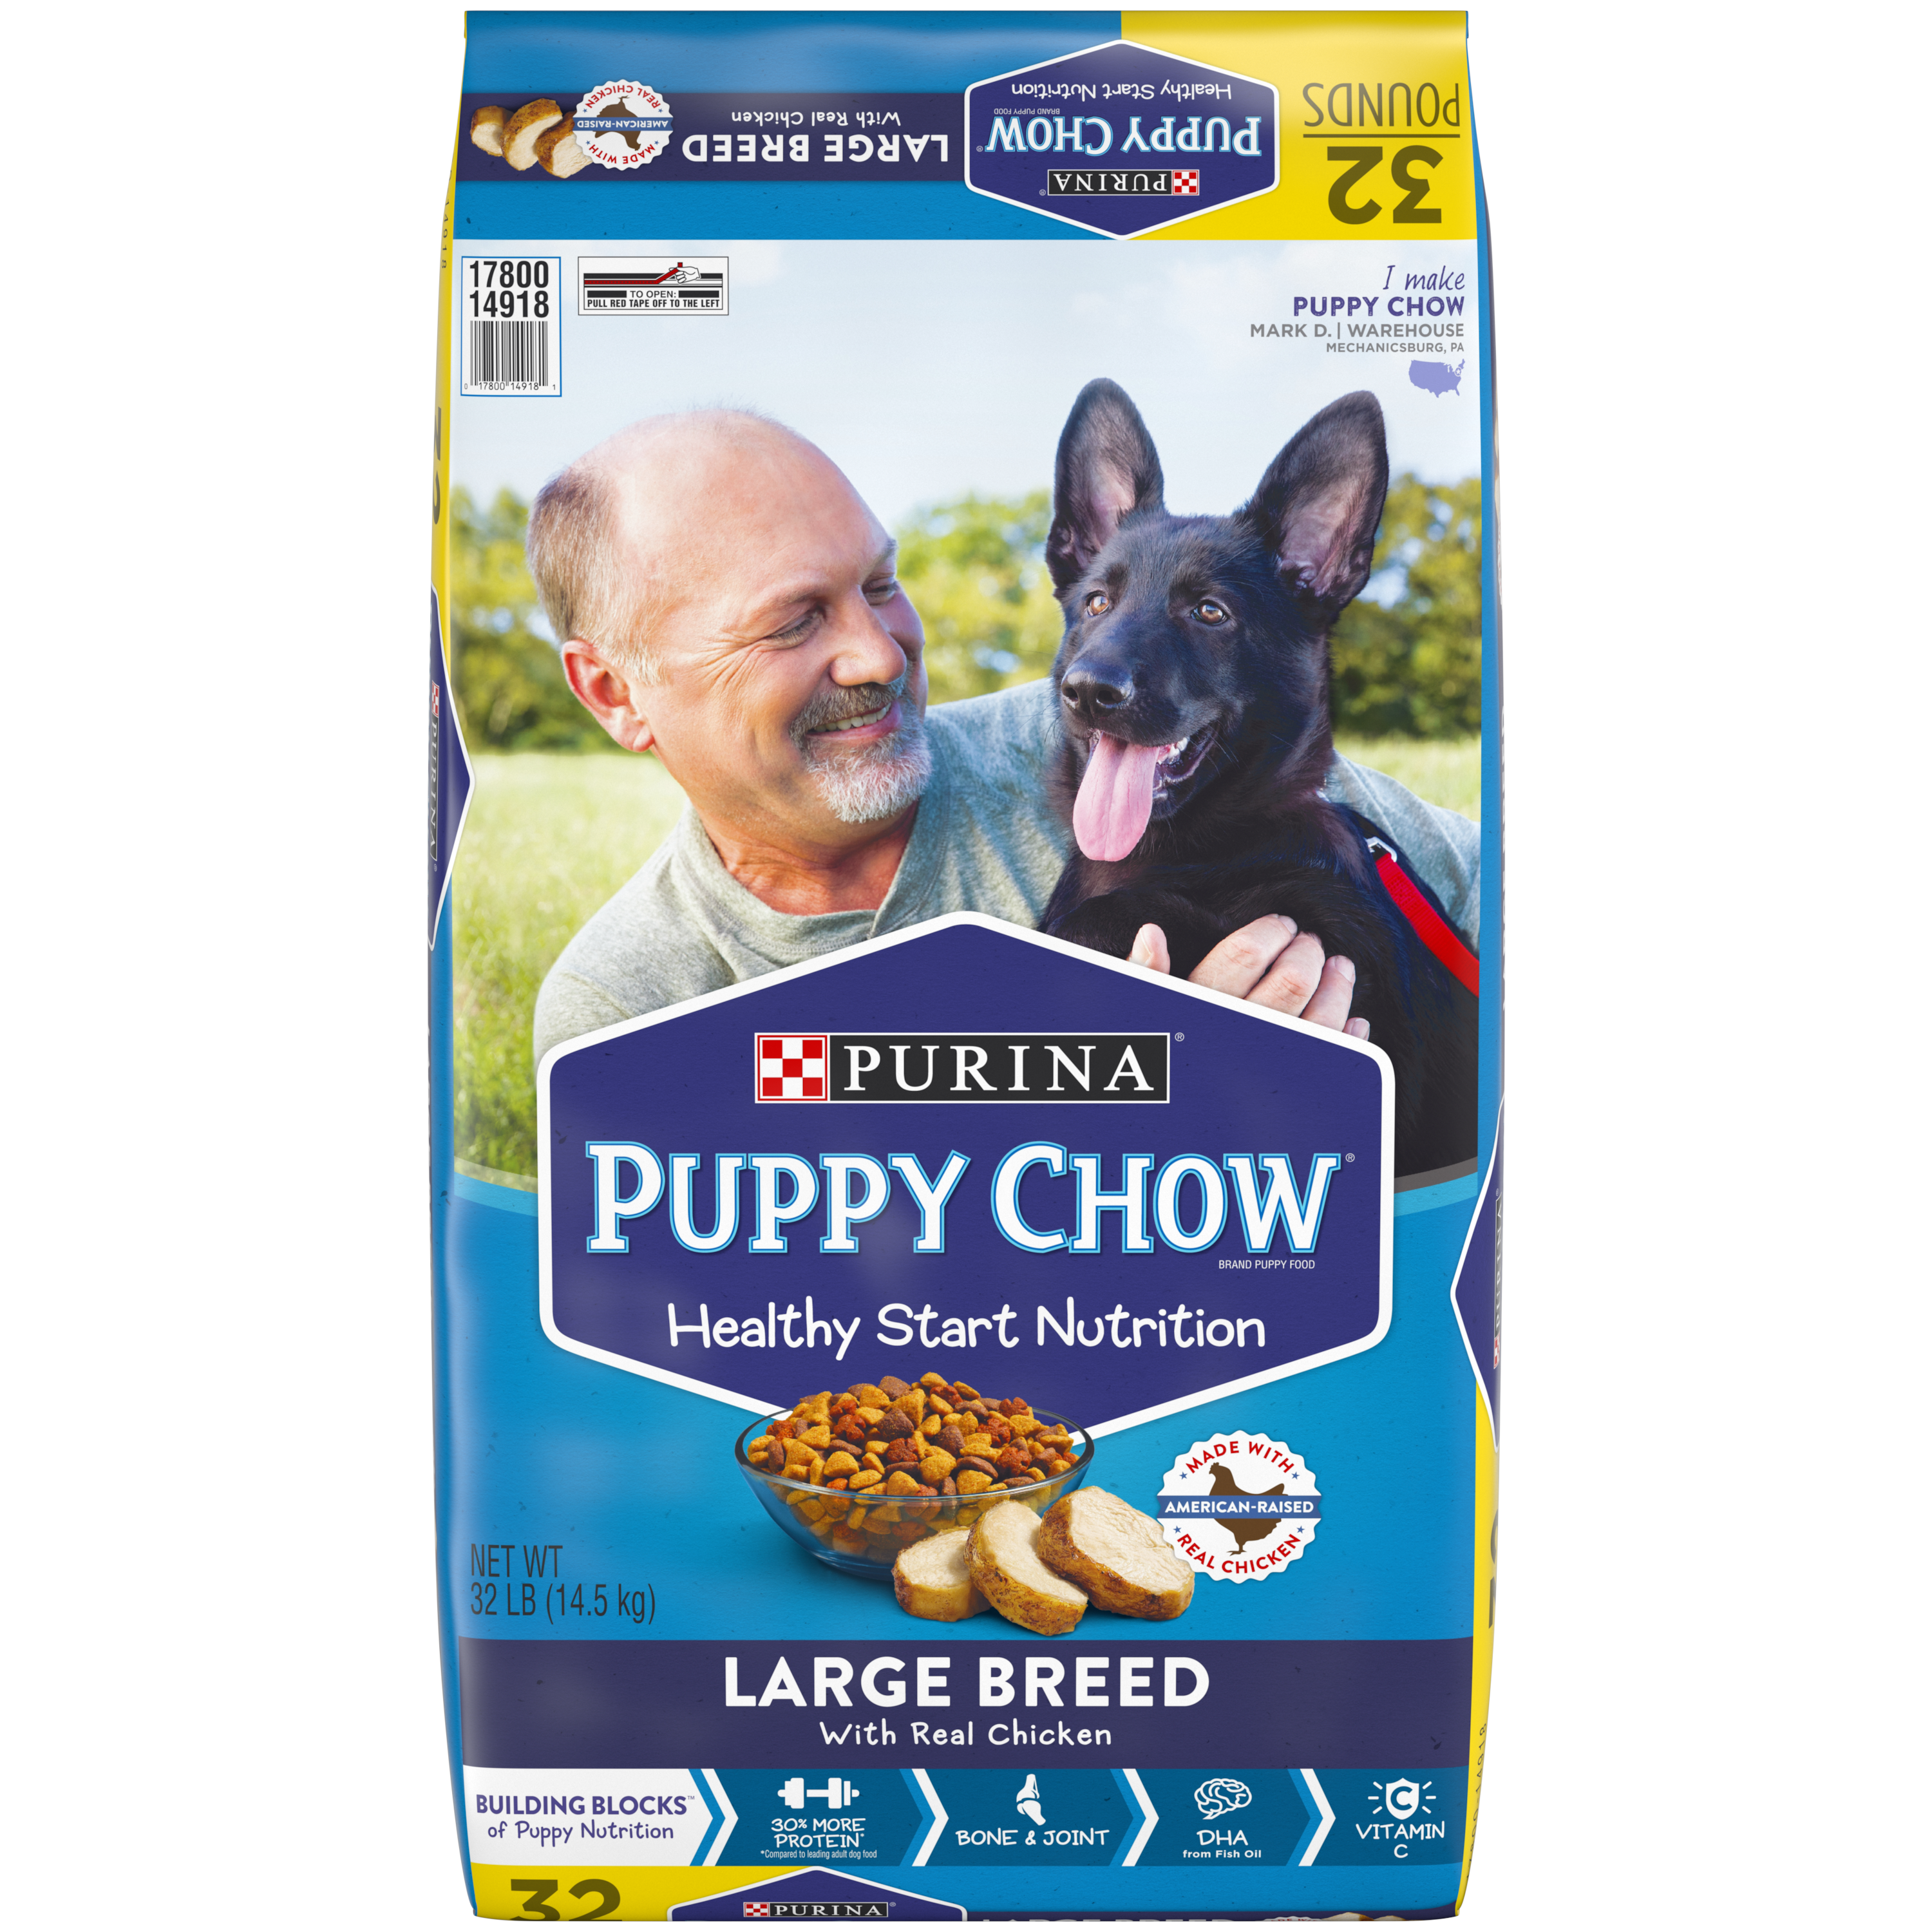 Purina Puppy Chow High Protein Large Breed Dry Puppy Food; With Real Chicken - 32 lb. Bag